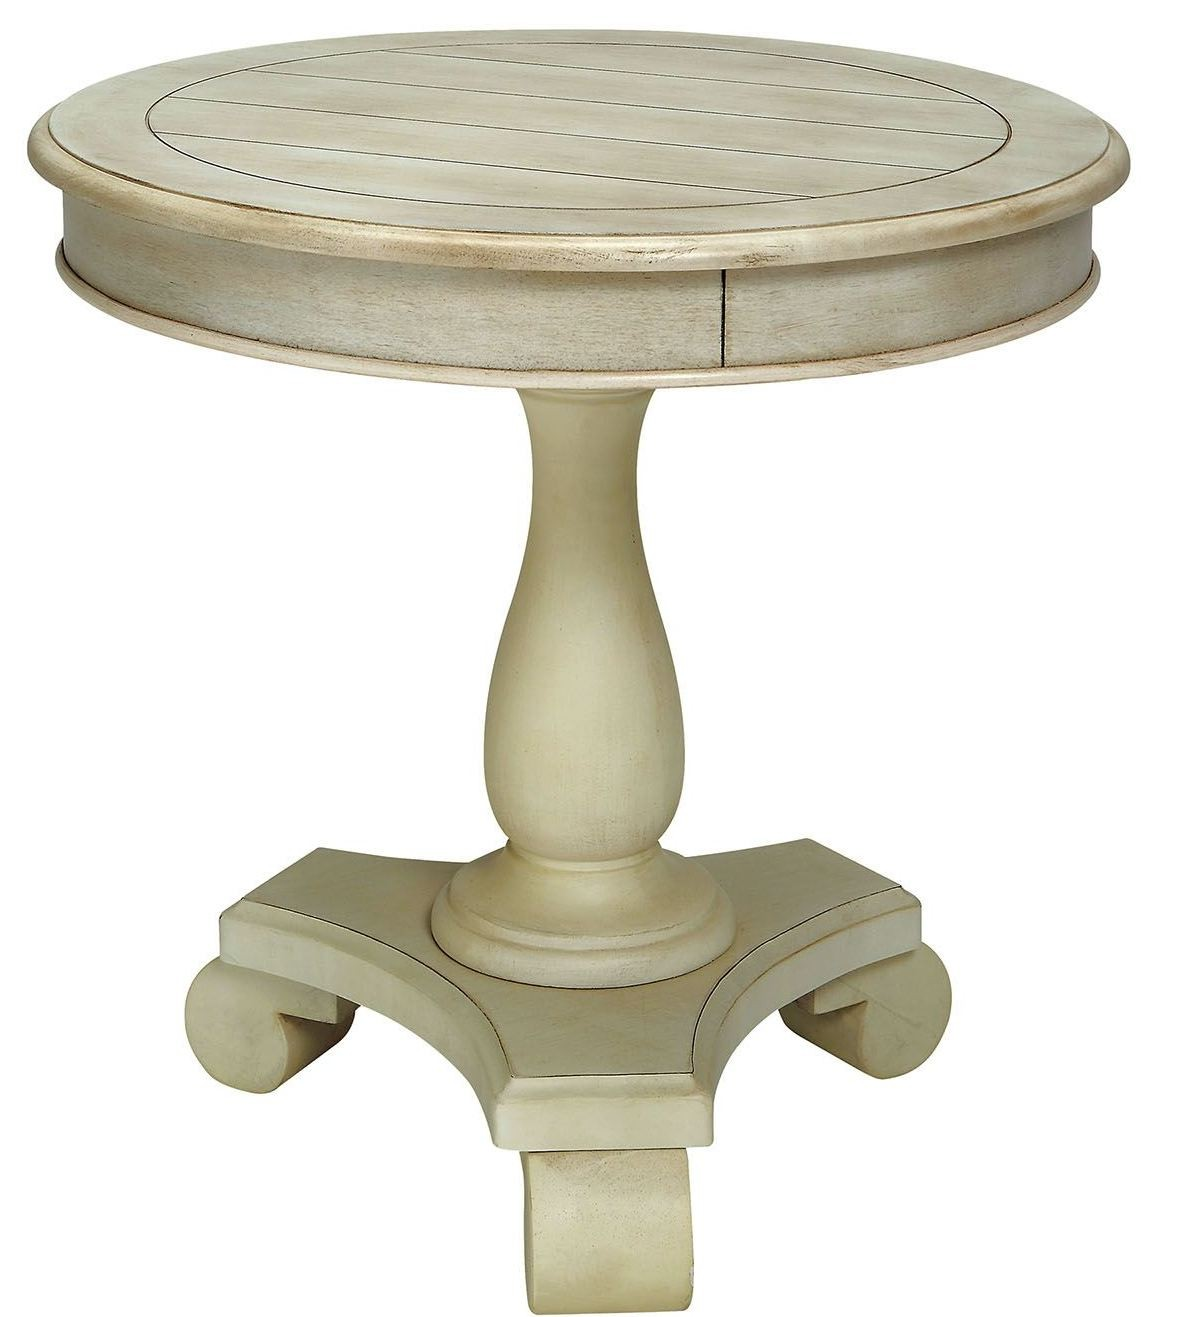 Kalea antique white round accent table cm ac135wh for White end table